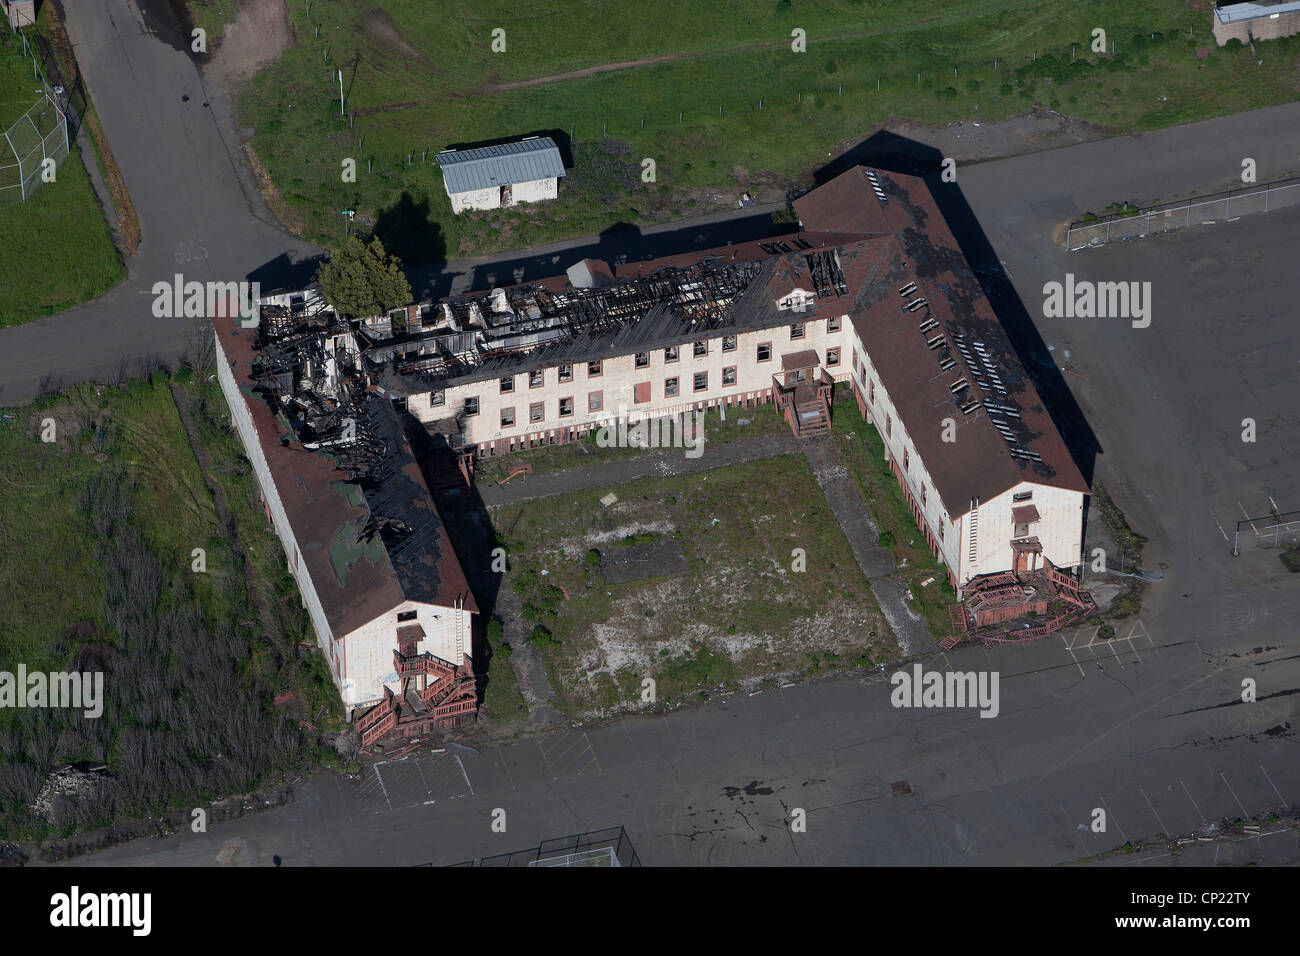 aerial photograph burned roof building Mare Island, Vallejo, California - Stock Image